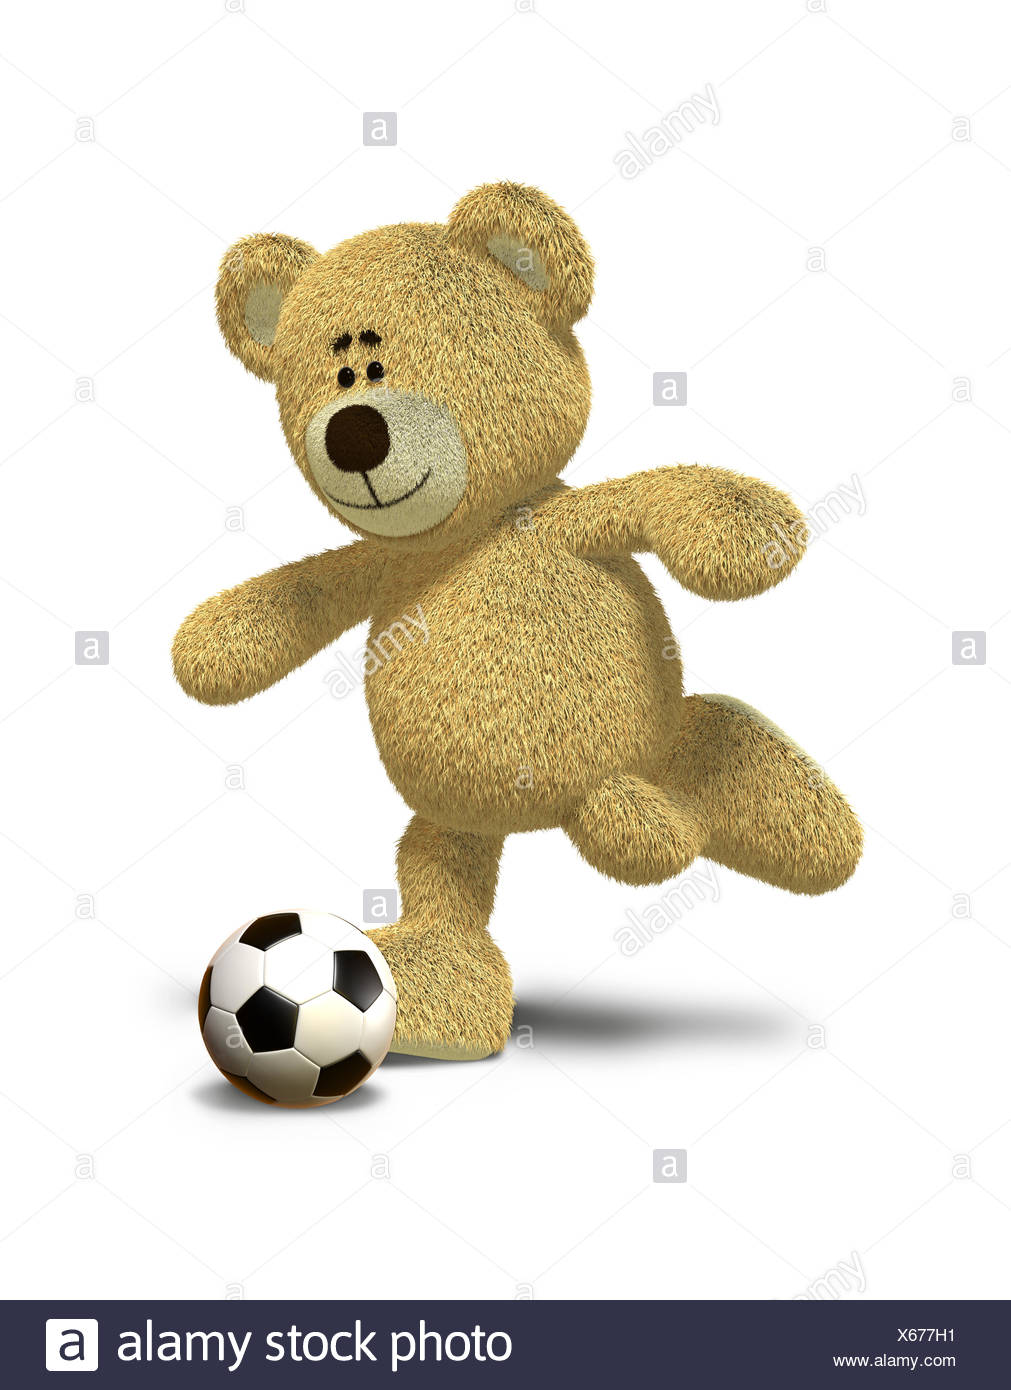 Nhi Bear kicks a soccer ball - Stock Image